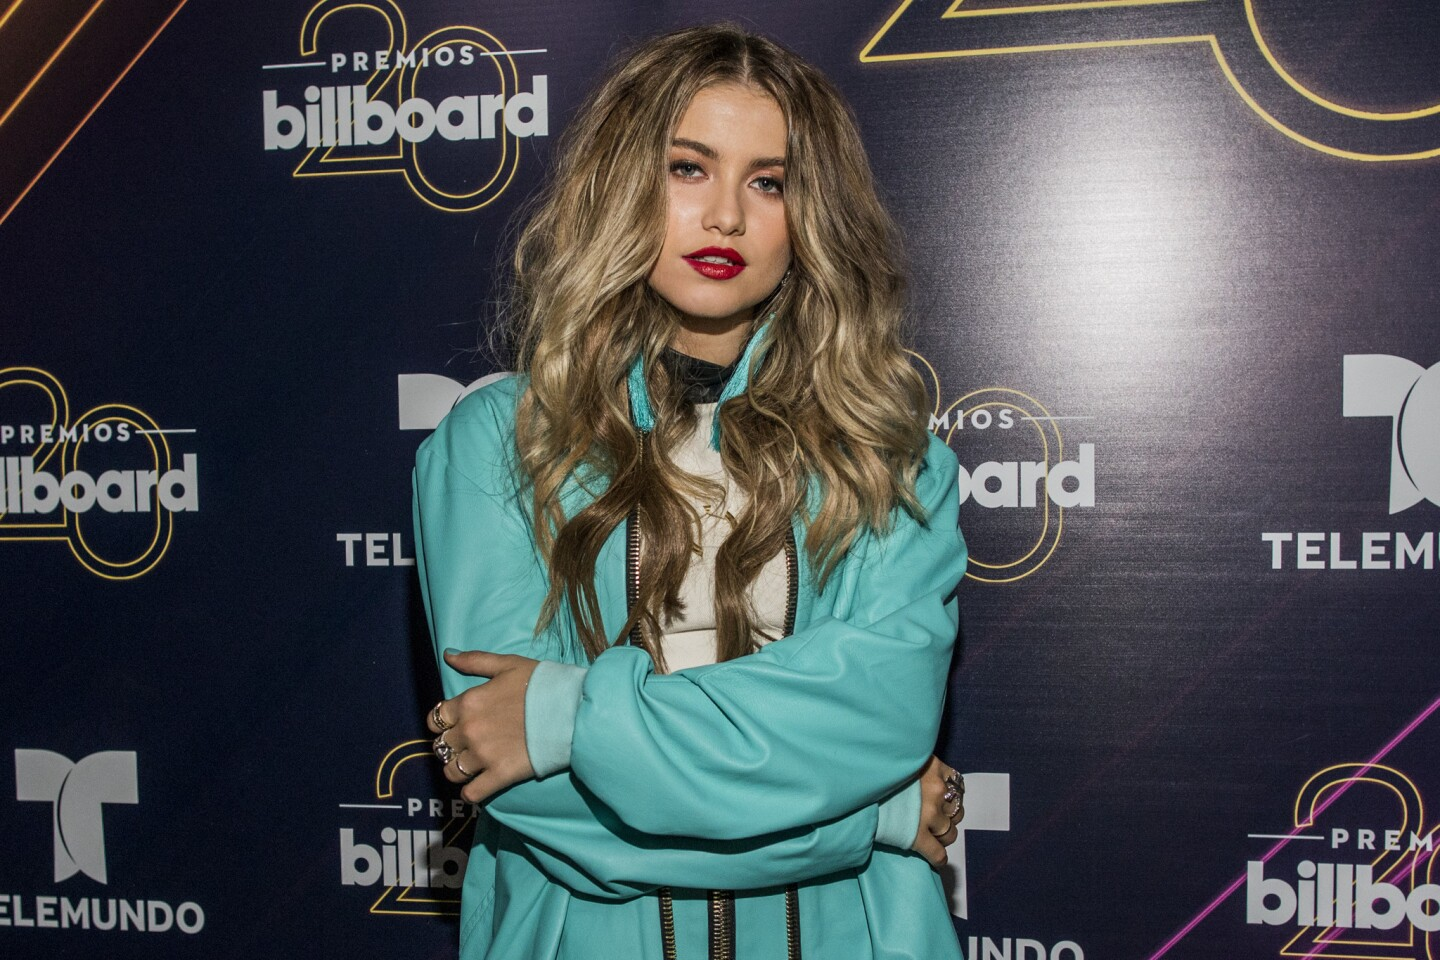 Sofia Reyes poses at the 20th annual Latin Billboard Awards at the Mandalay Bay Events Center on Thursday, April 26, 2018, in Las Vegas. (Photo by Joe Buglewicz/Invision/AP)